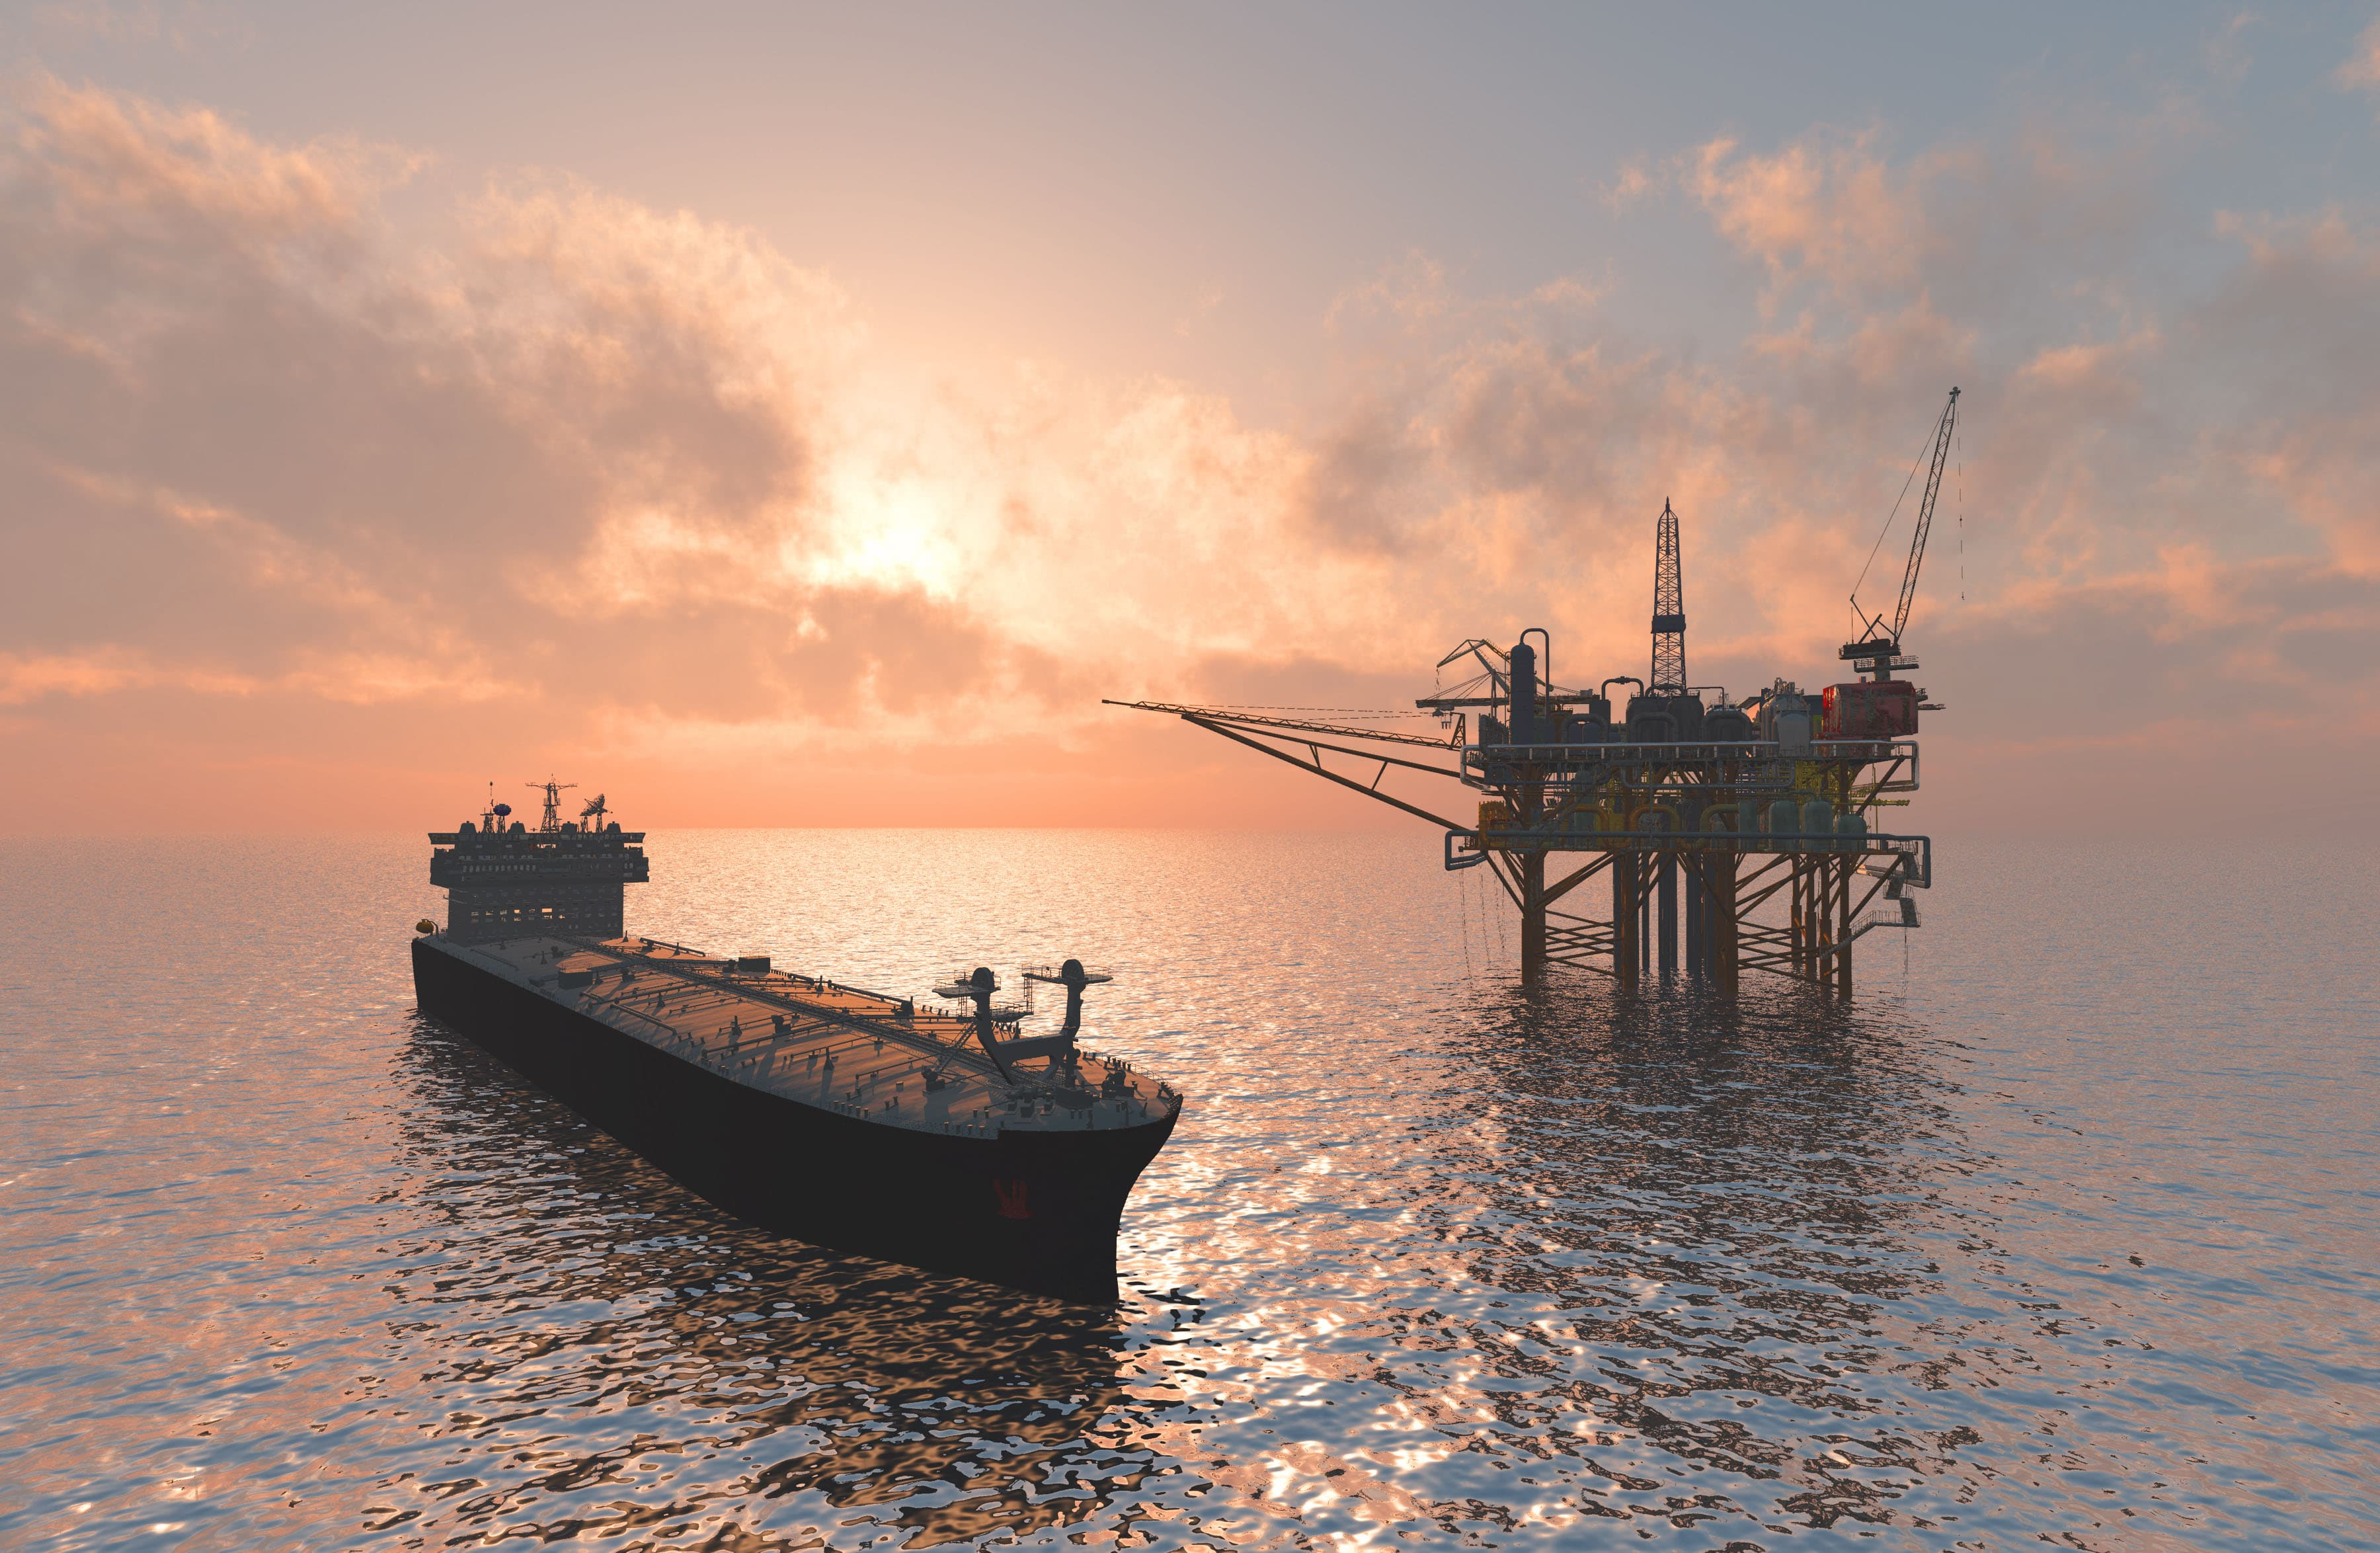 shipping tanker and oil rig at sunset